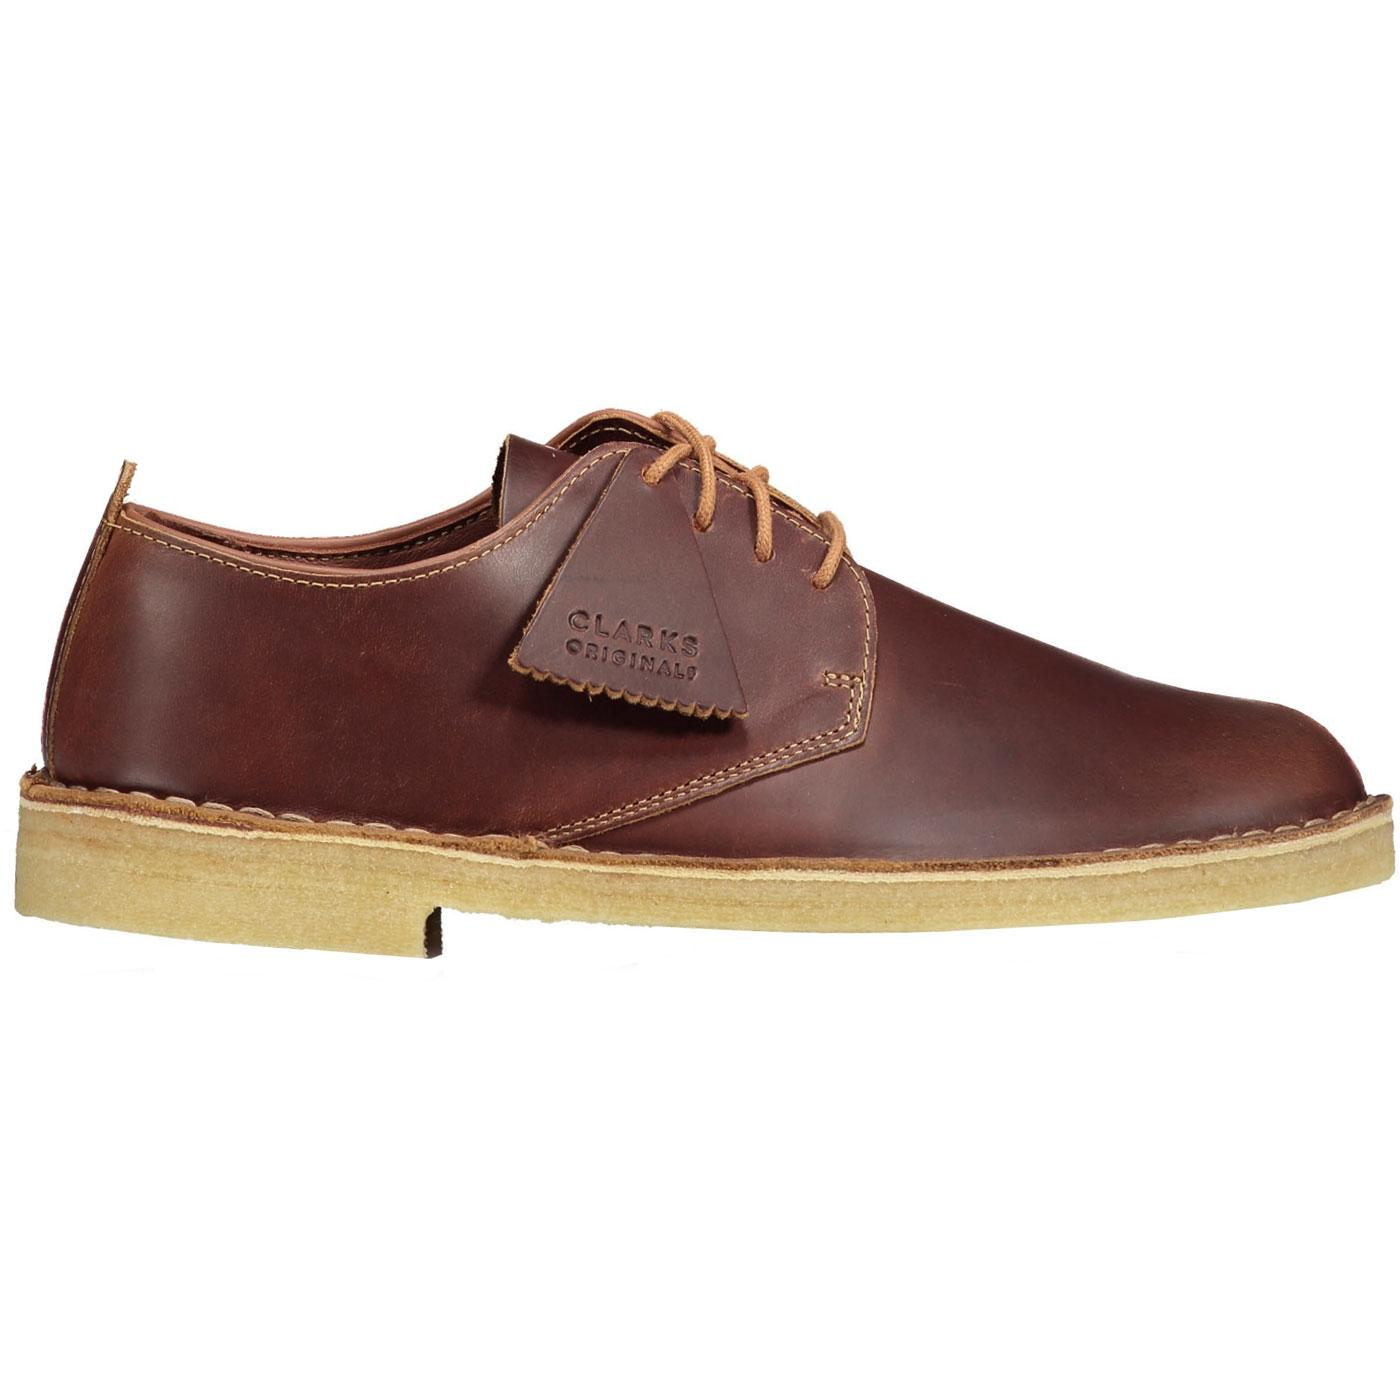 Desert London CLARKS ORIGINALS Tan Leather Shoes